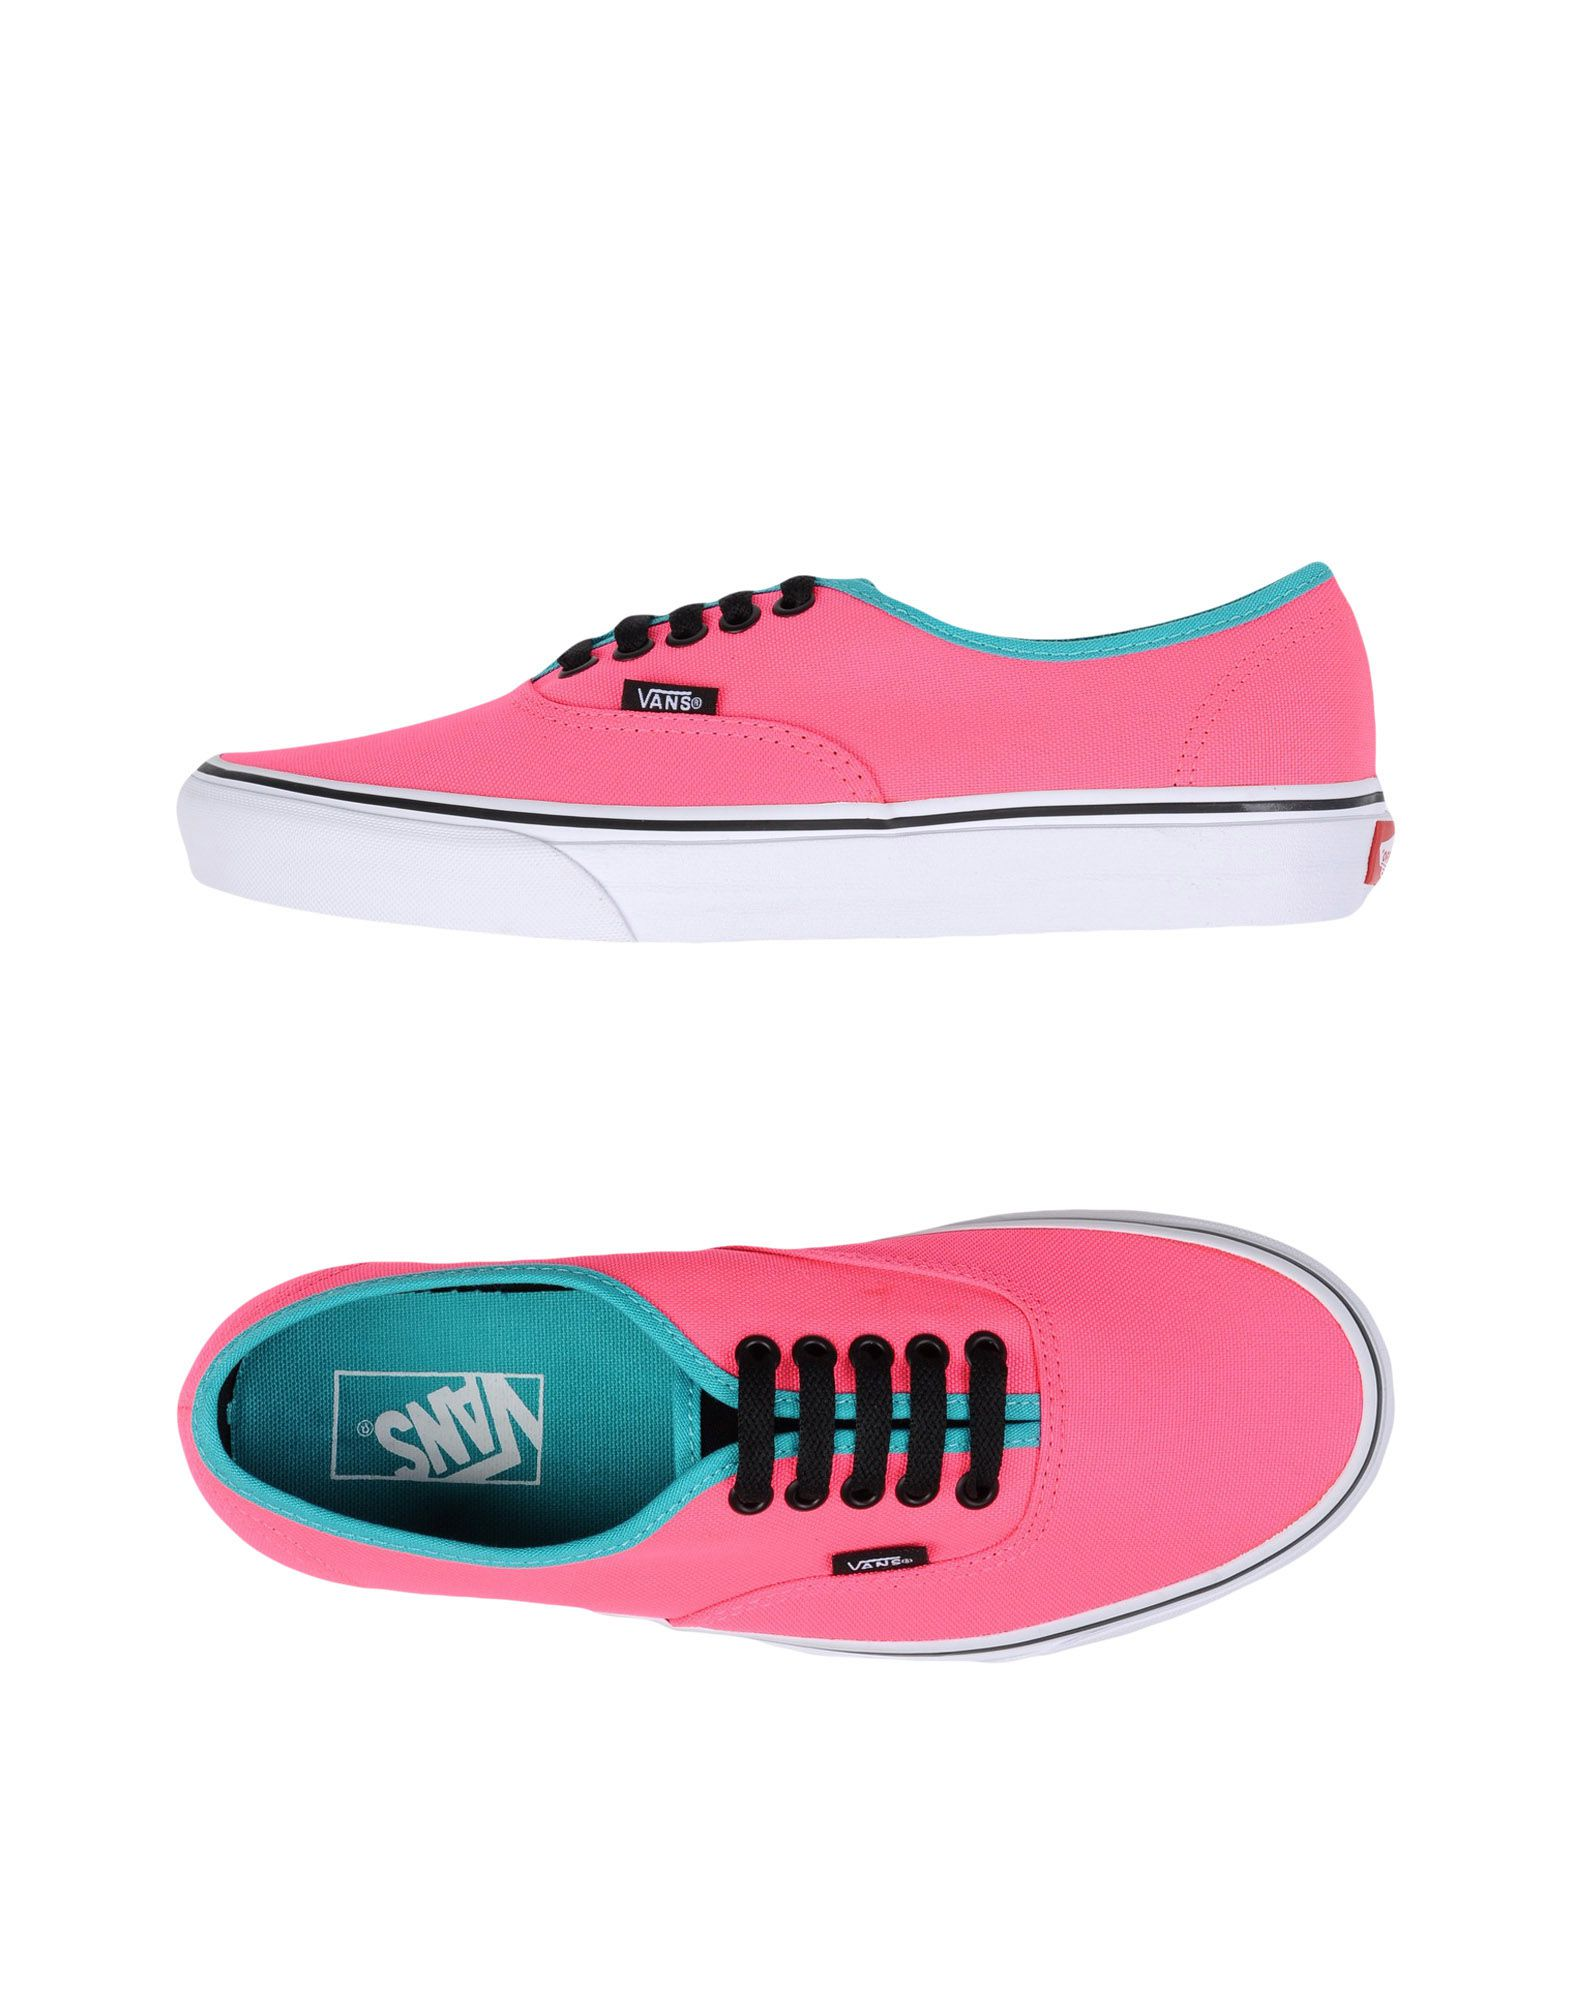 Sneakers Vans U Authentic Brite Neon Pi - Femme - Sneakers Vans sur